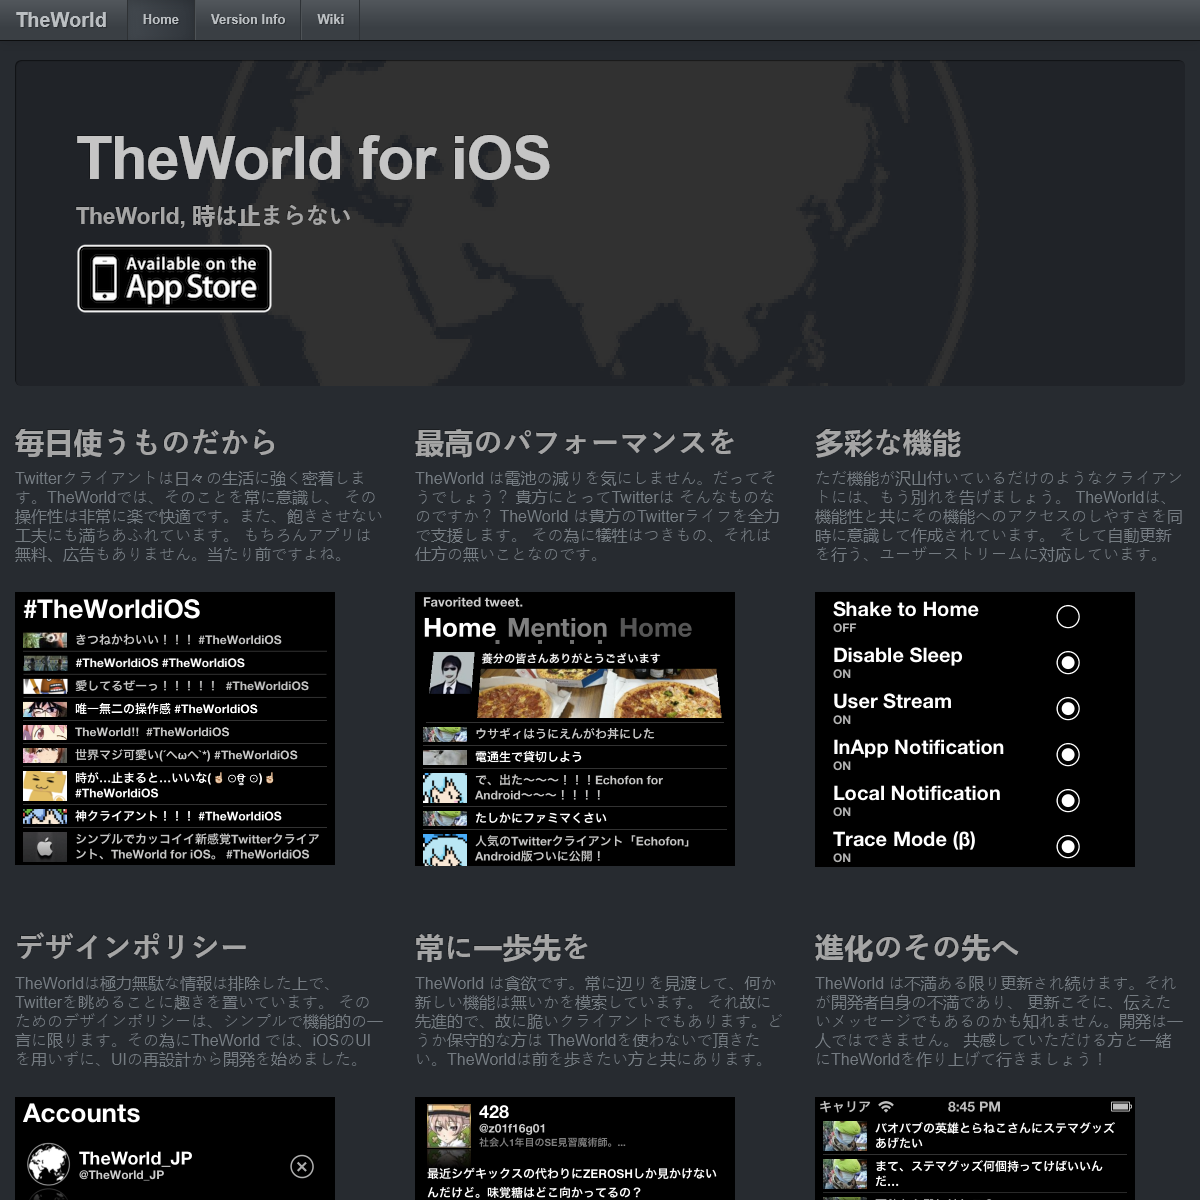 A complete backup of theworld09.com